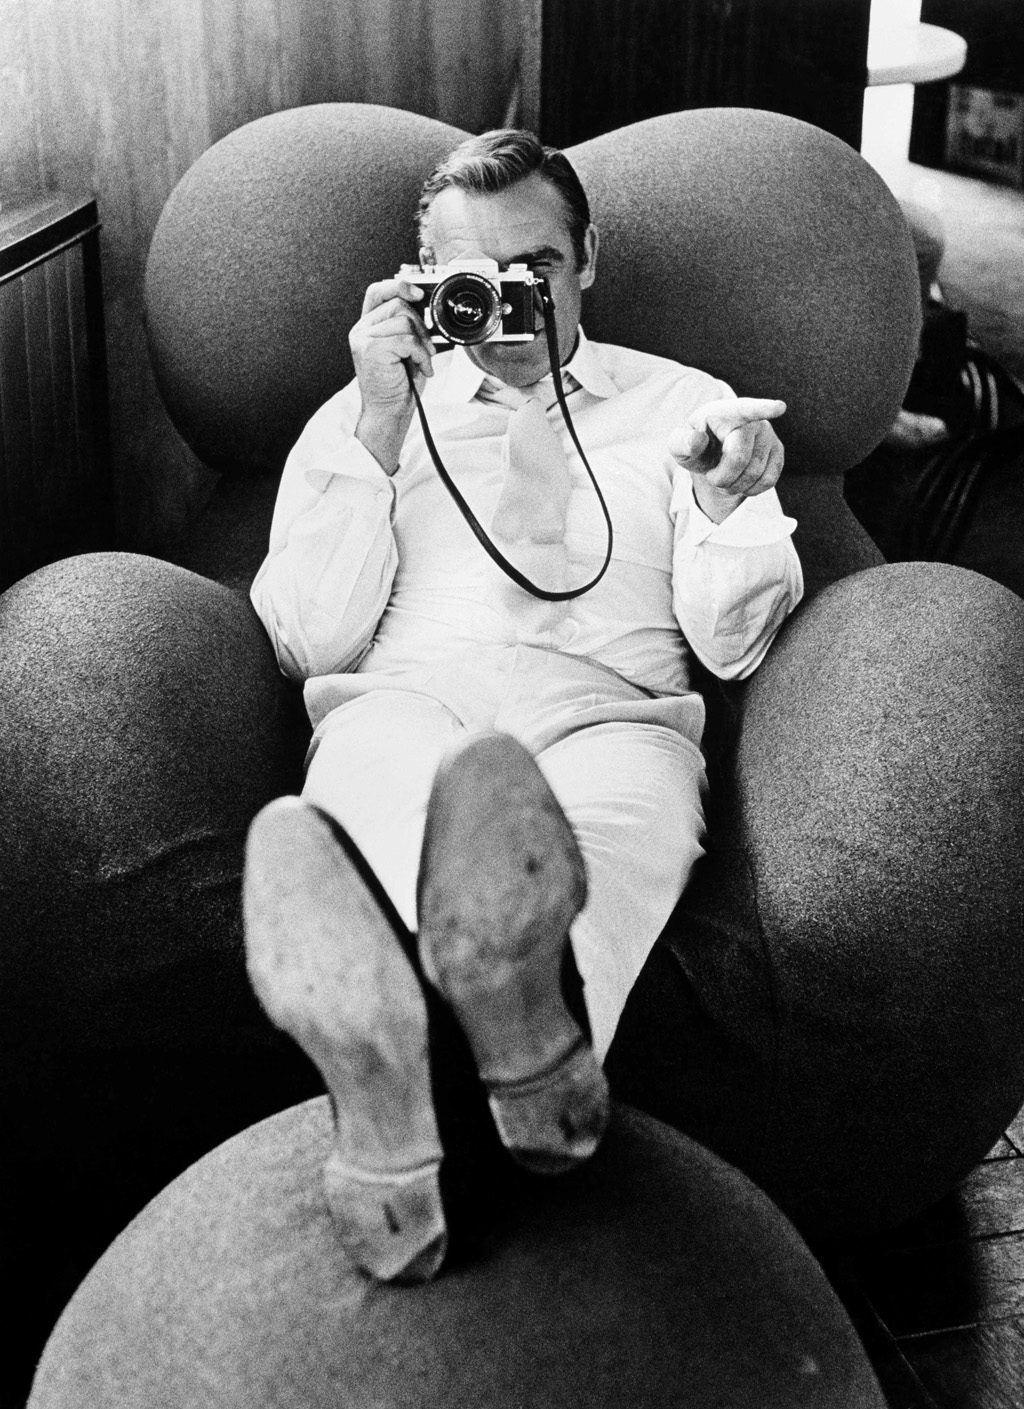 Sean Connery with camera, pointing.